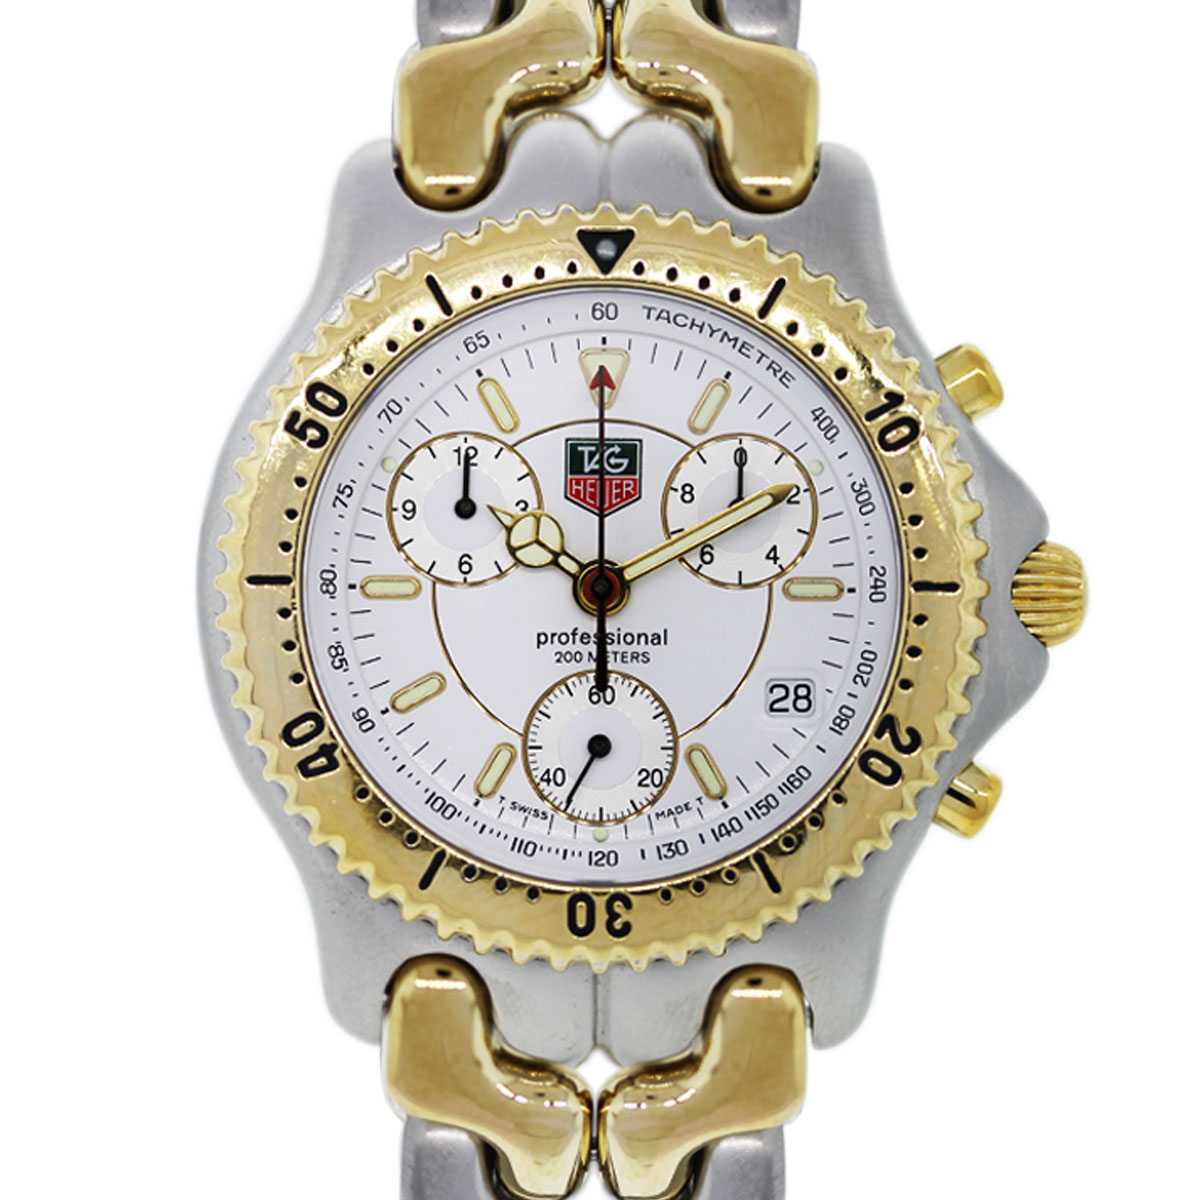 tag heuer professional two tone chronograph watch boca raton. Black Bedroom Furniture Sets. Home Design Ideas